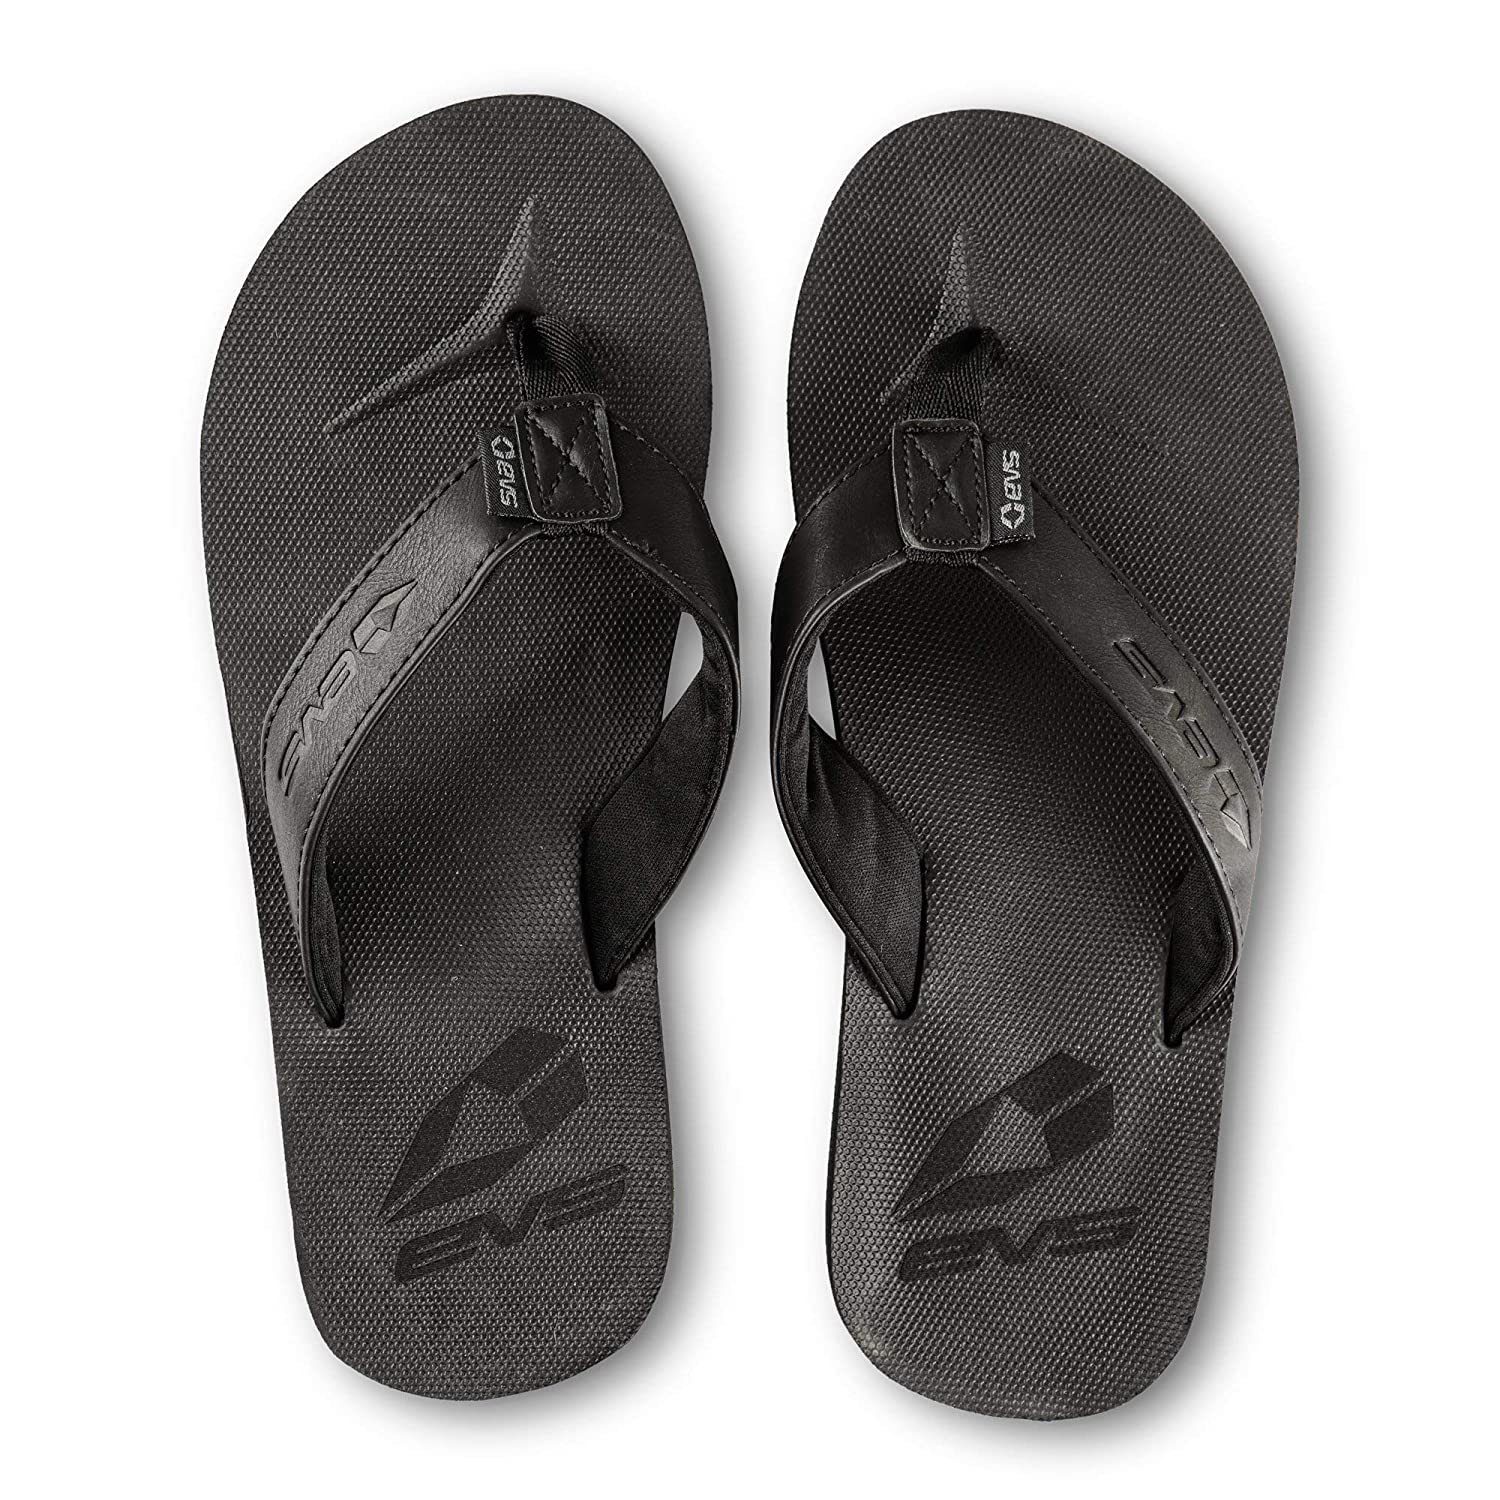 13.5-15.5 EVS Sports Unisex Adult Flip Flops Black XXX-Large